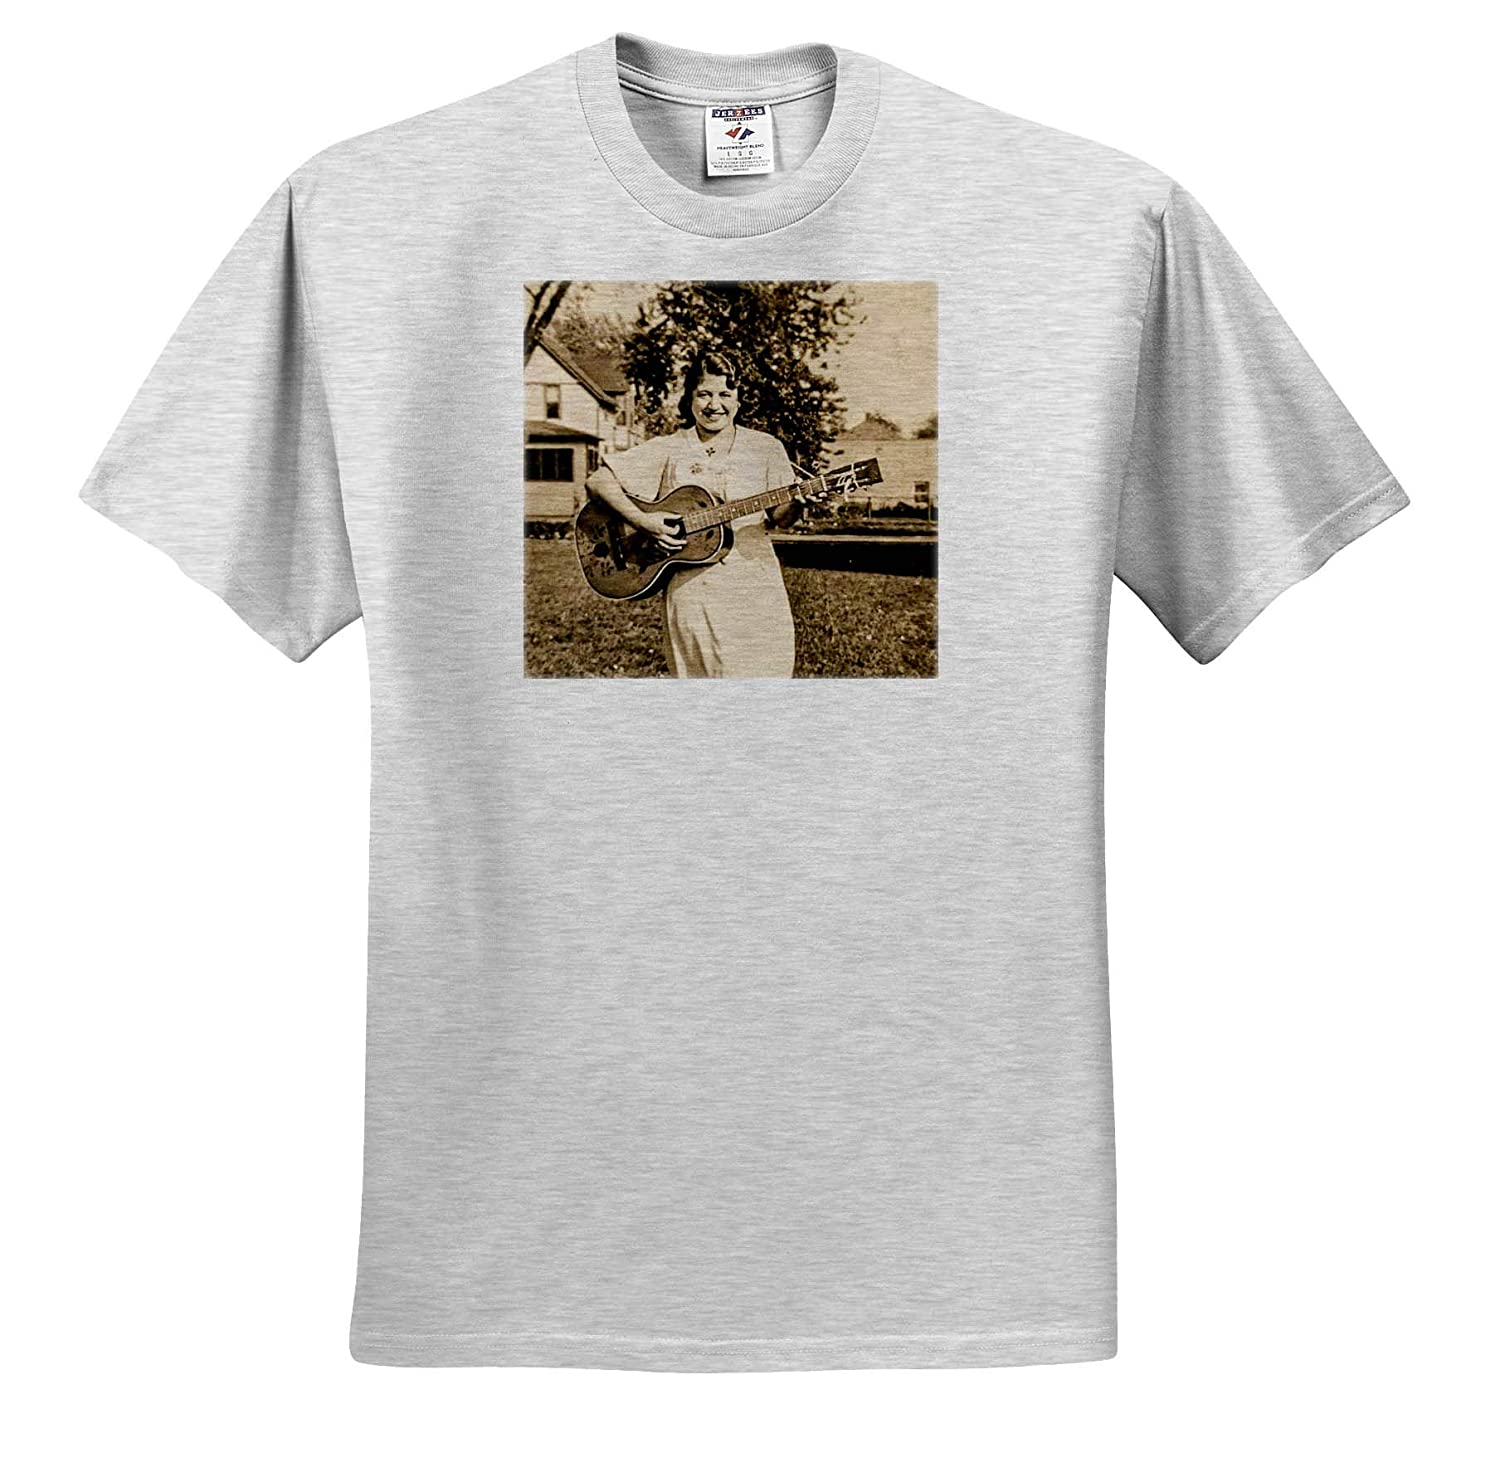 Vintage Photography T-Shirts 3dRose Scenes from The Past Early American Country Folk Singer with Guitar